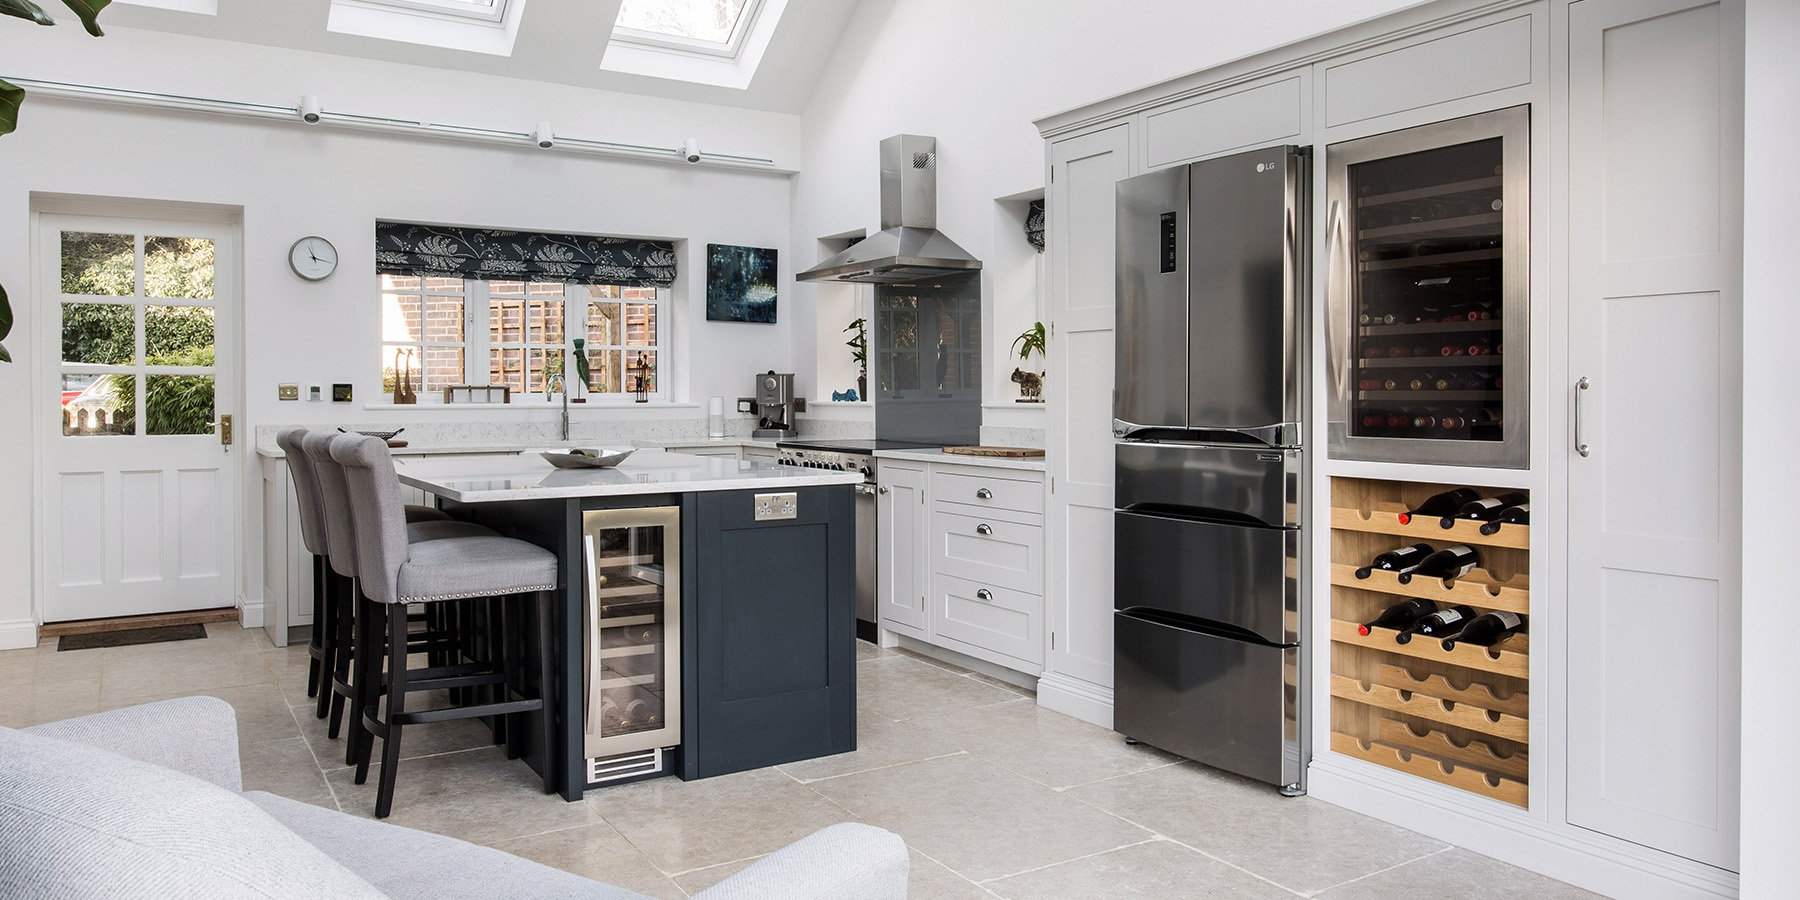 Burlanes Bespoke Kitchen With Ca'Pietra Stone Flooring - Burlanes bespoke Hoyden kitchen with beautiful Ca'Pietra stone flooring and tiles.